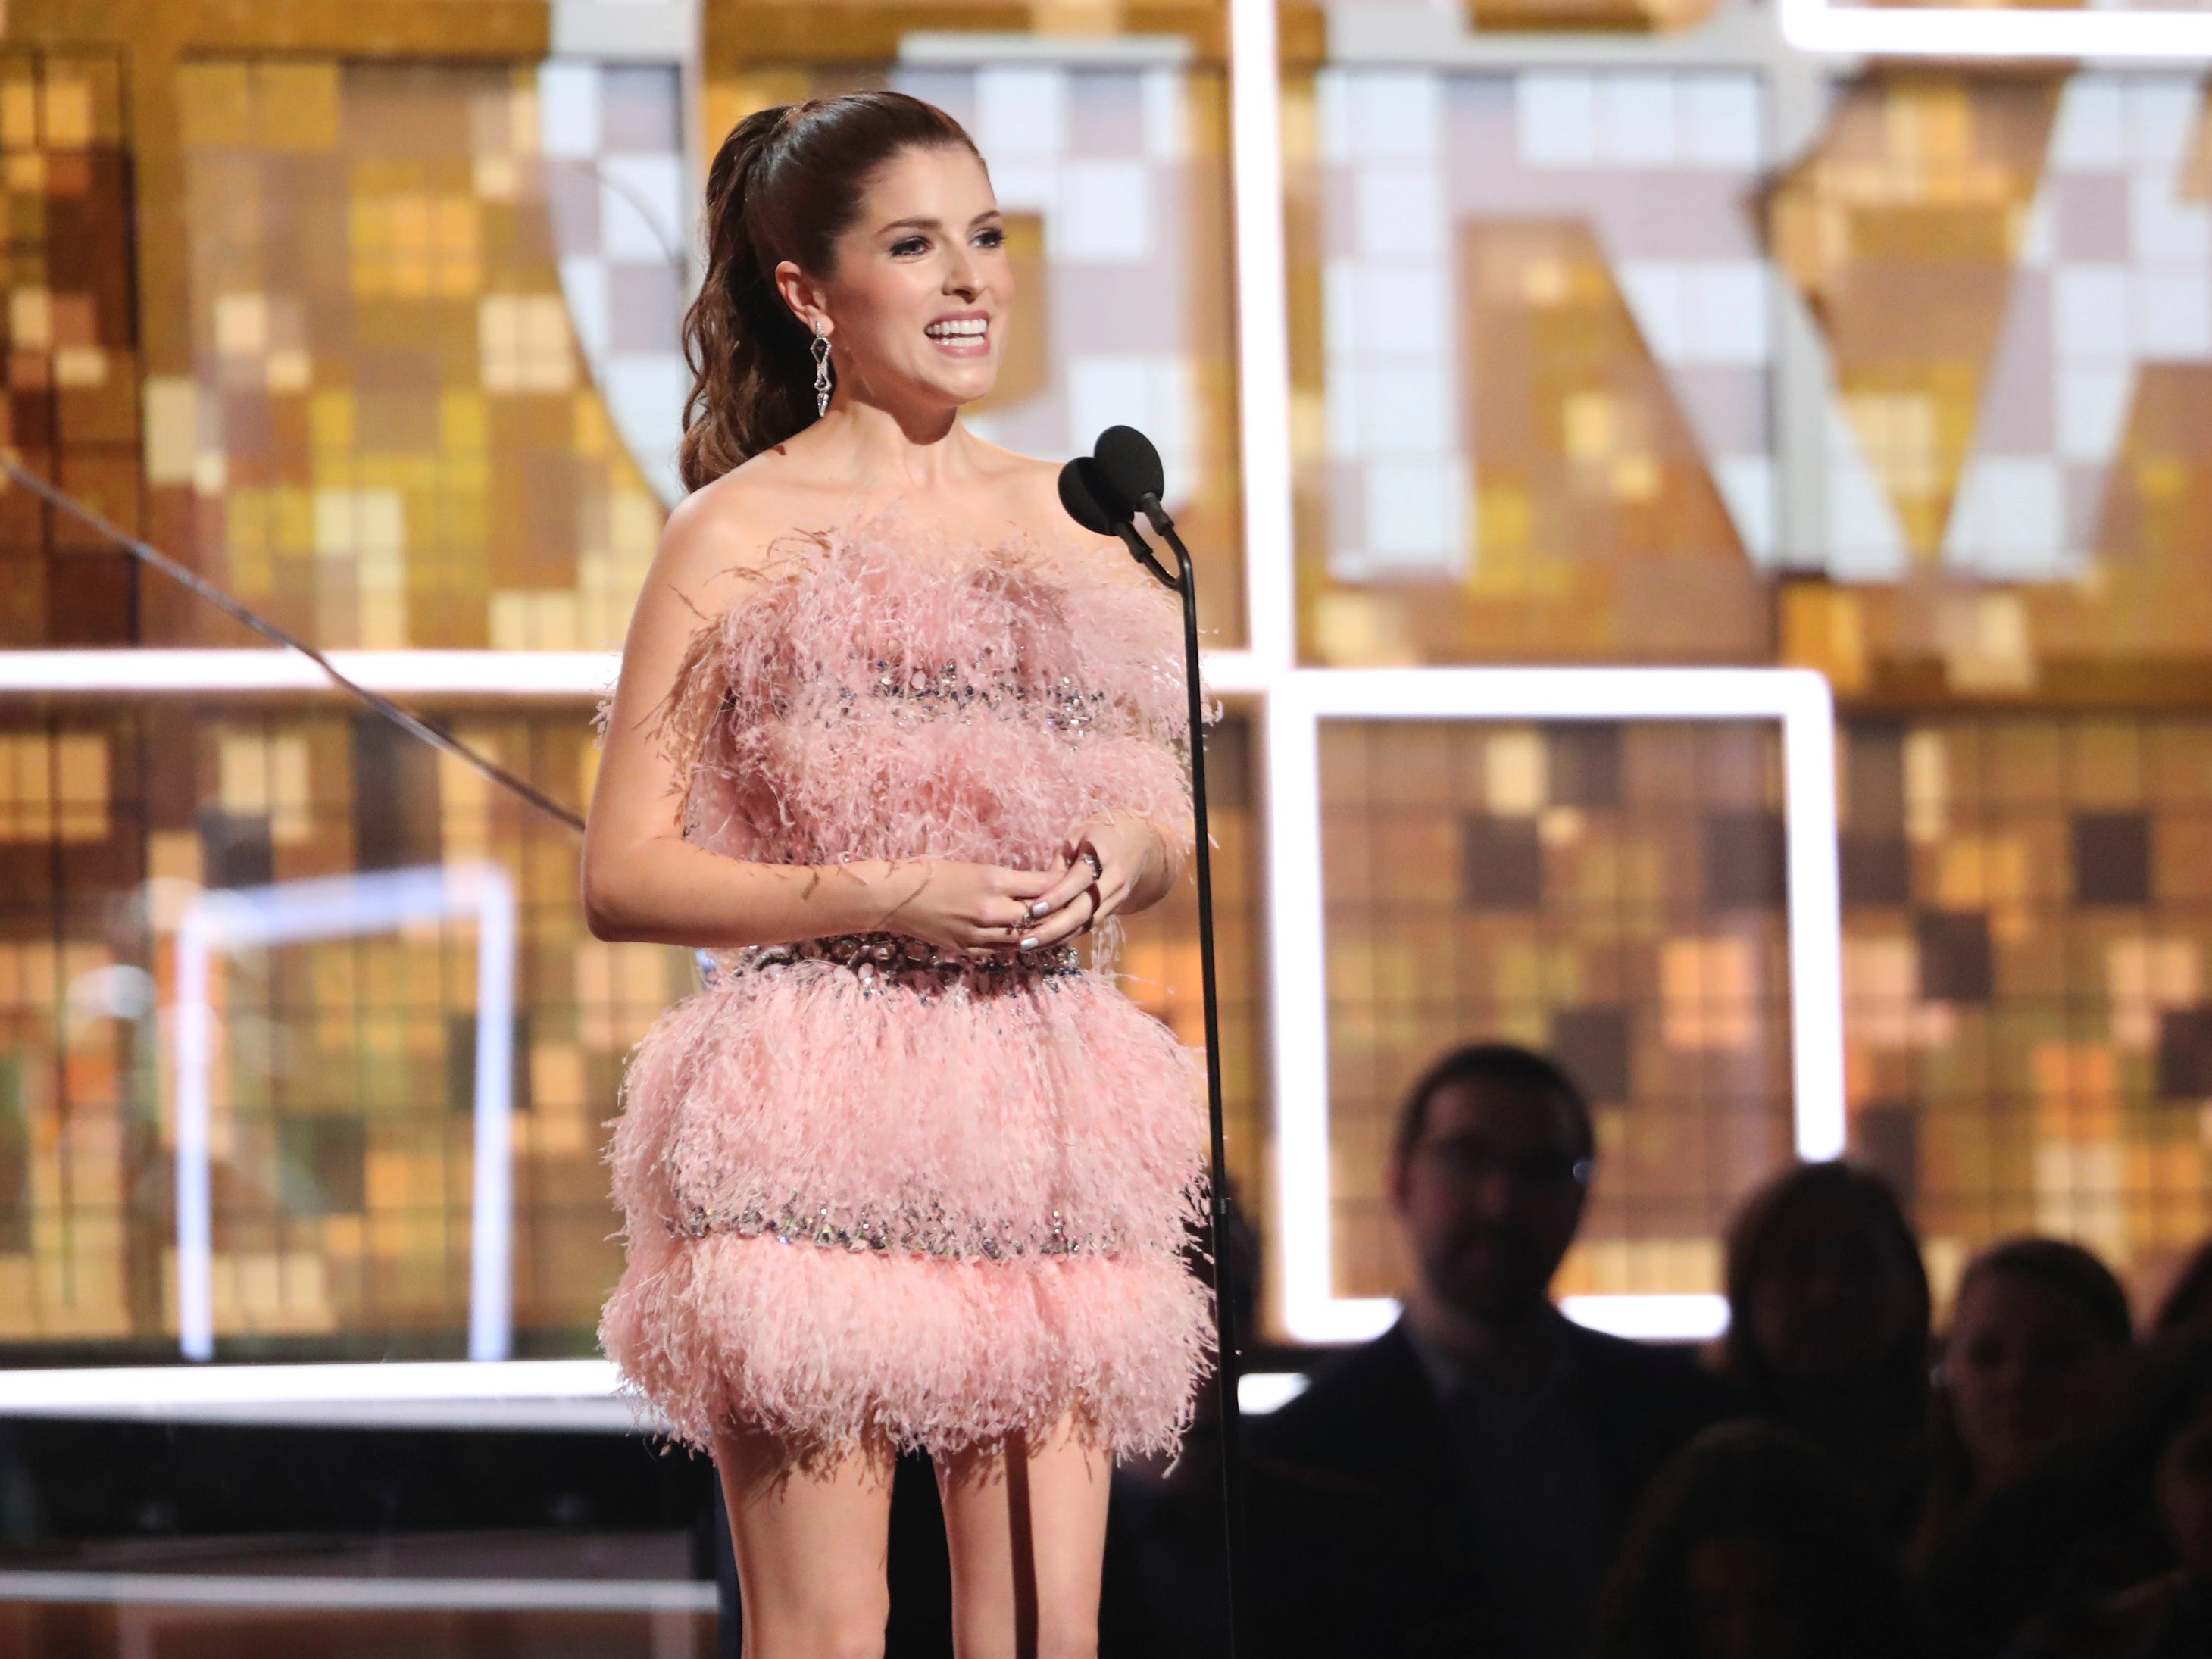 Anna Kendrick introduces a performance by Dolly Parton at the 61st annual Grammy Awards on Sunday, Feb. 10, 2019, in Los Angeles.